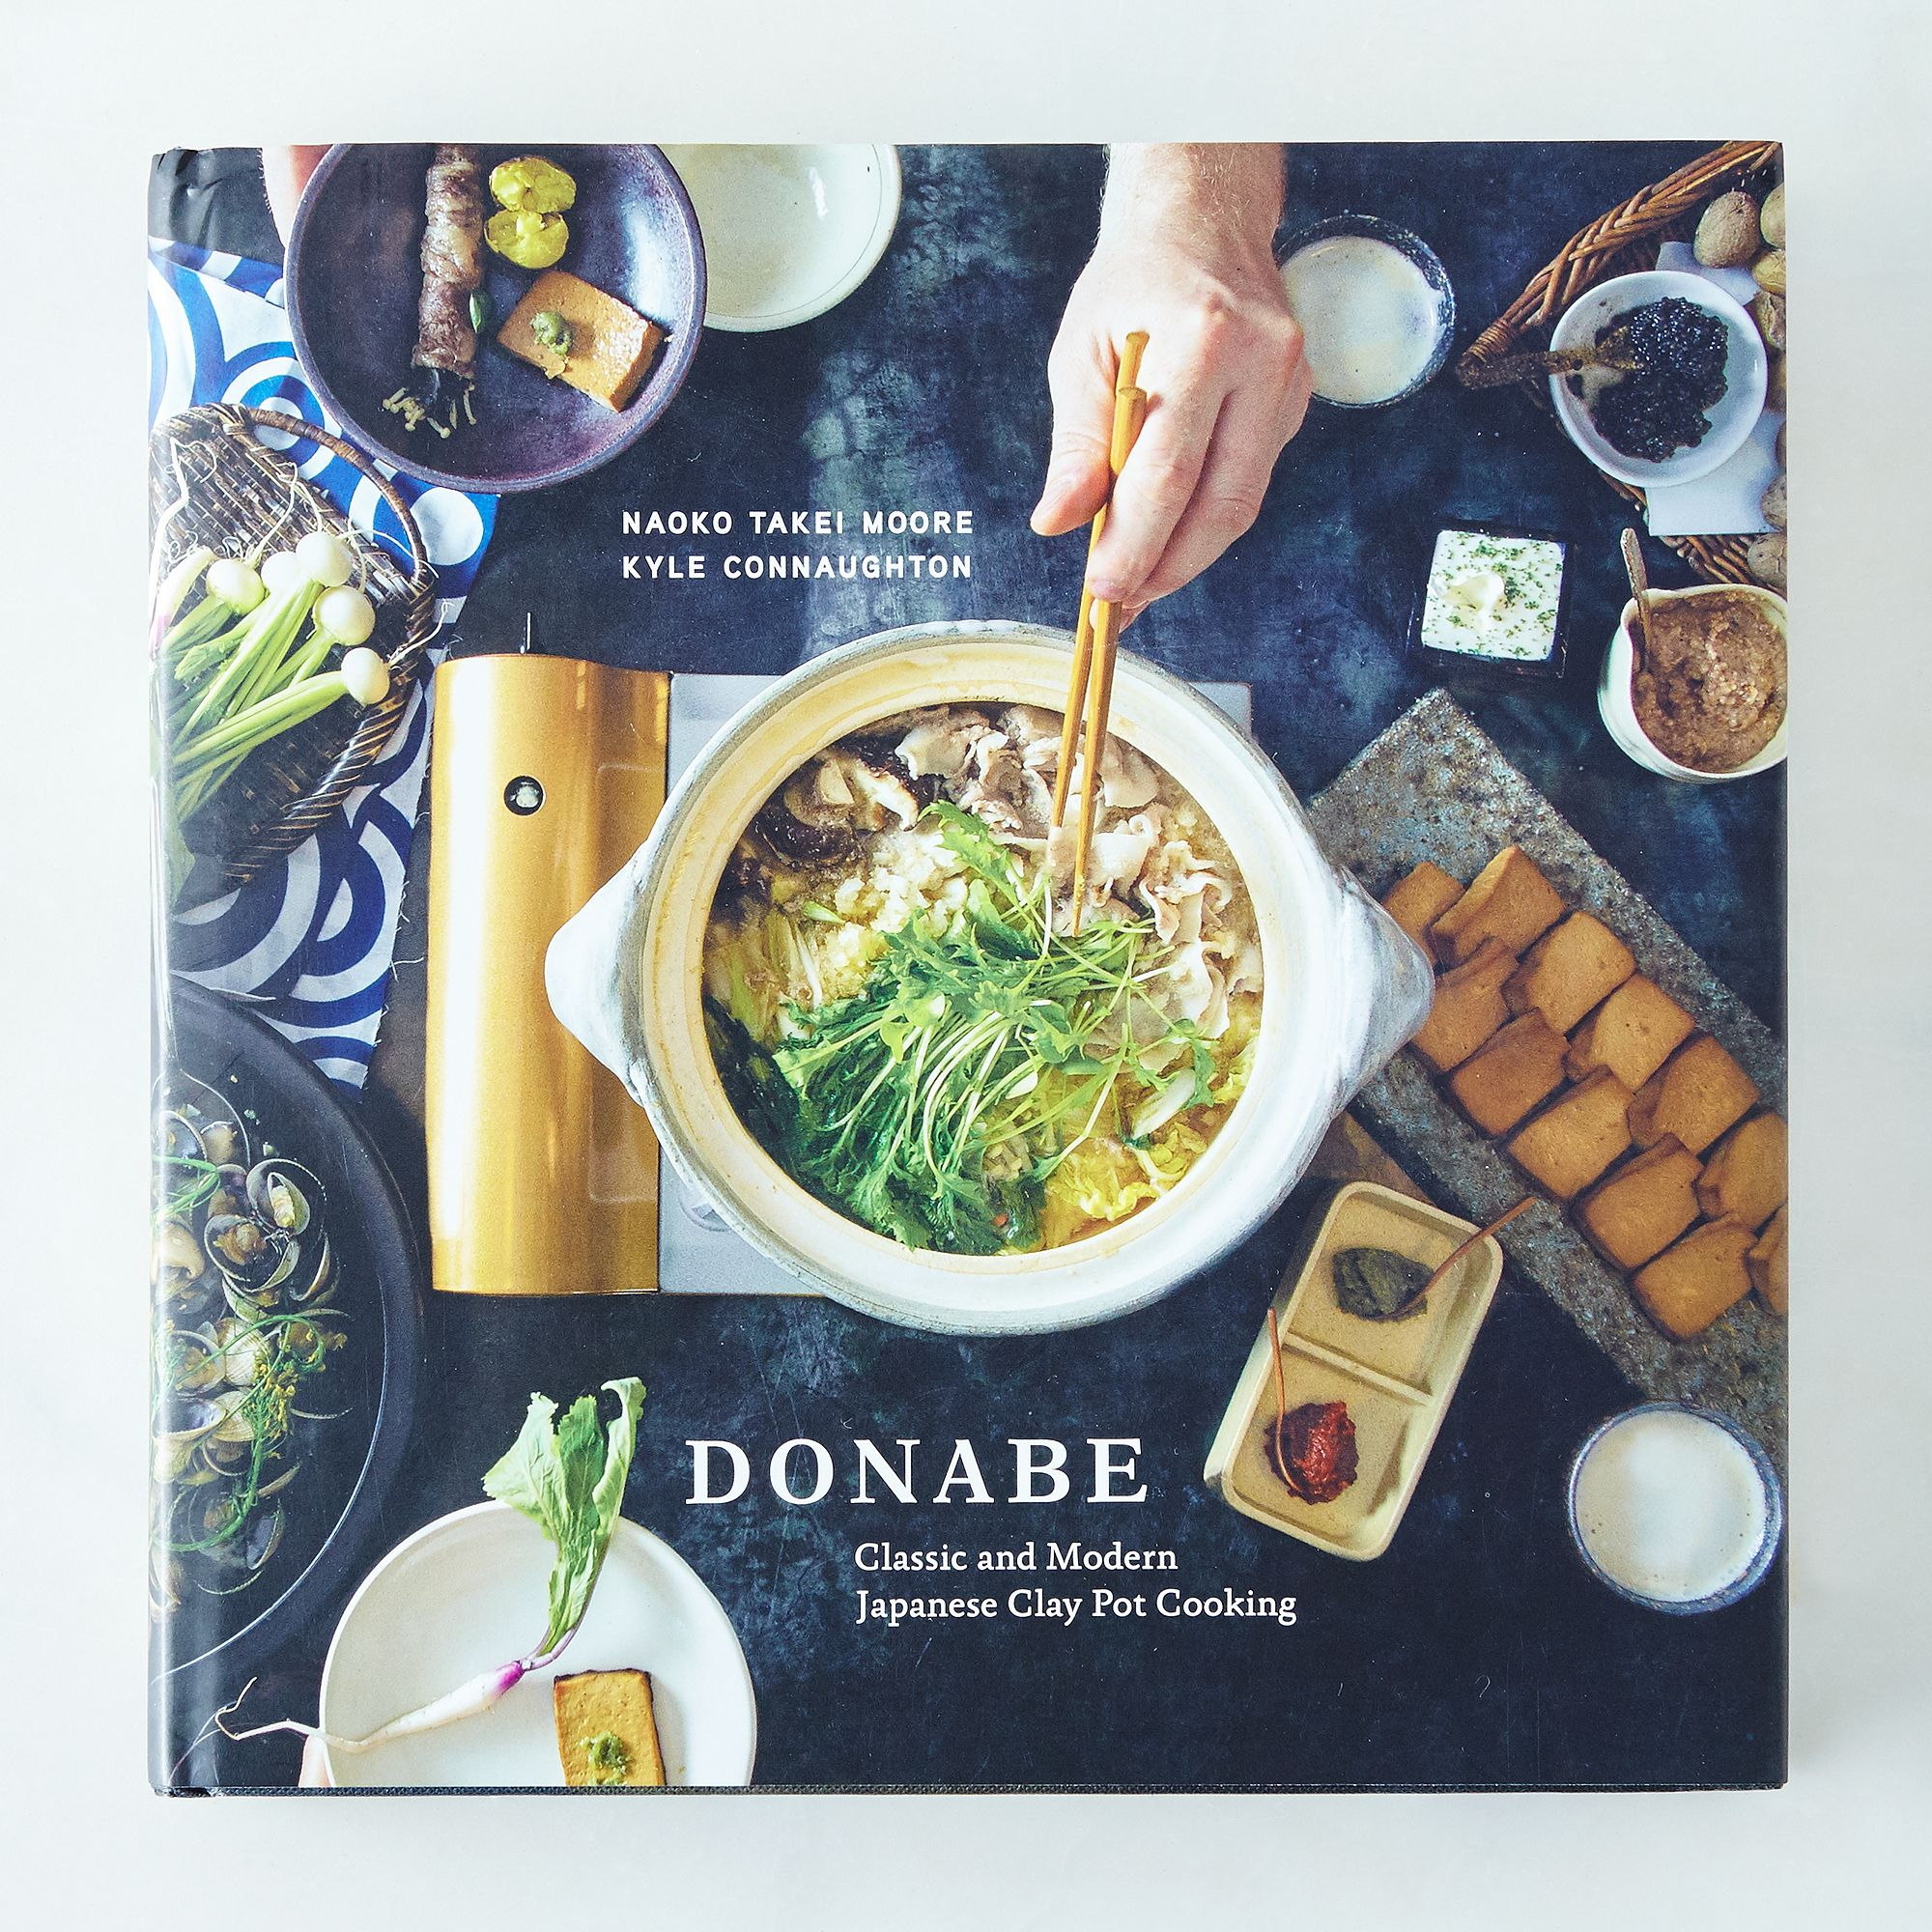 2017 will be the year for asian cookbooks donabe classic and modern japanese clay pot cooking sig forumfinder Choice Image